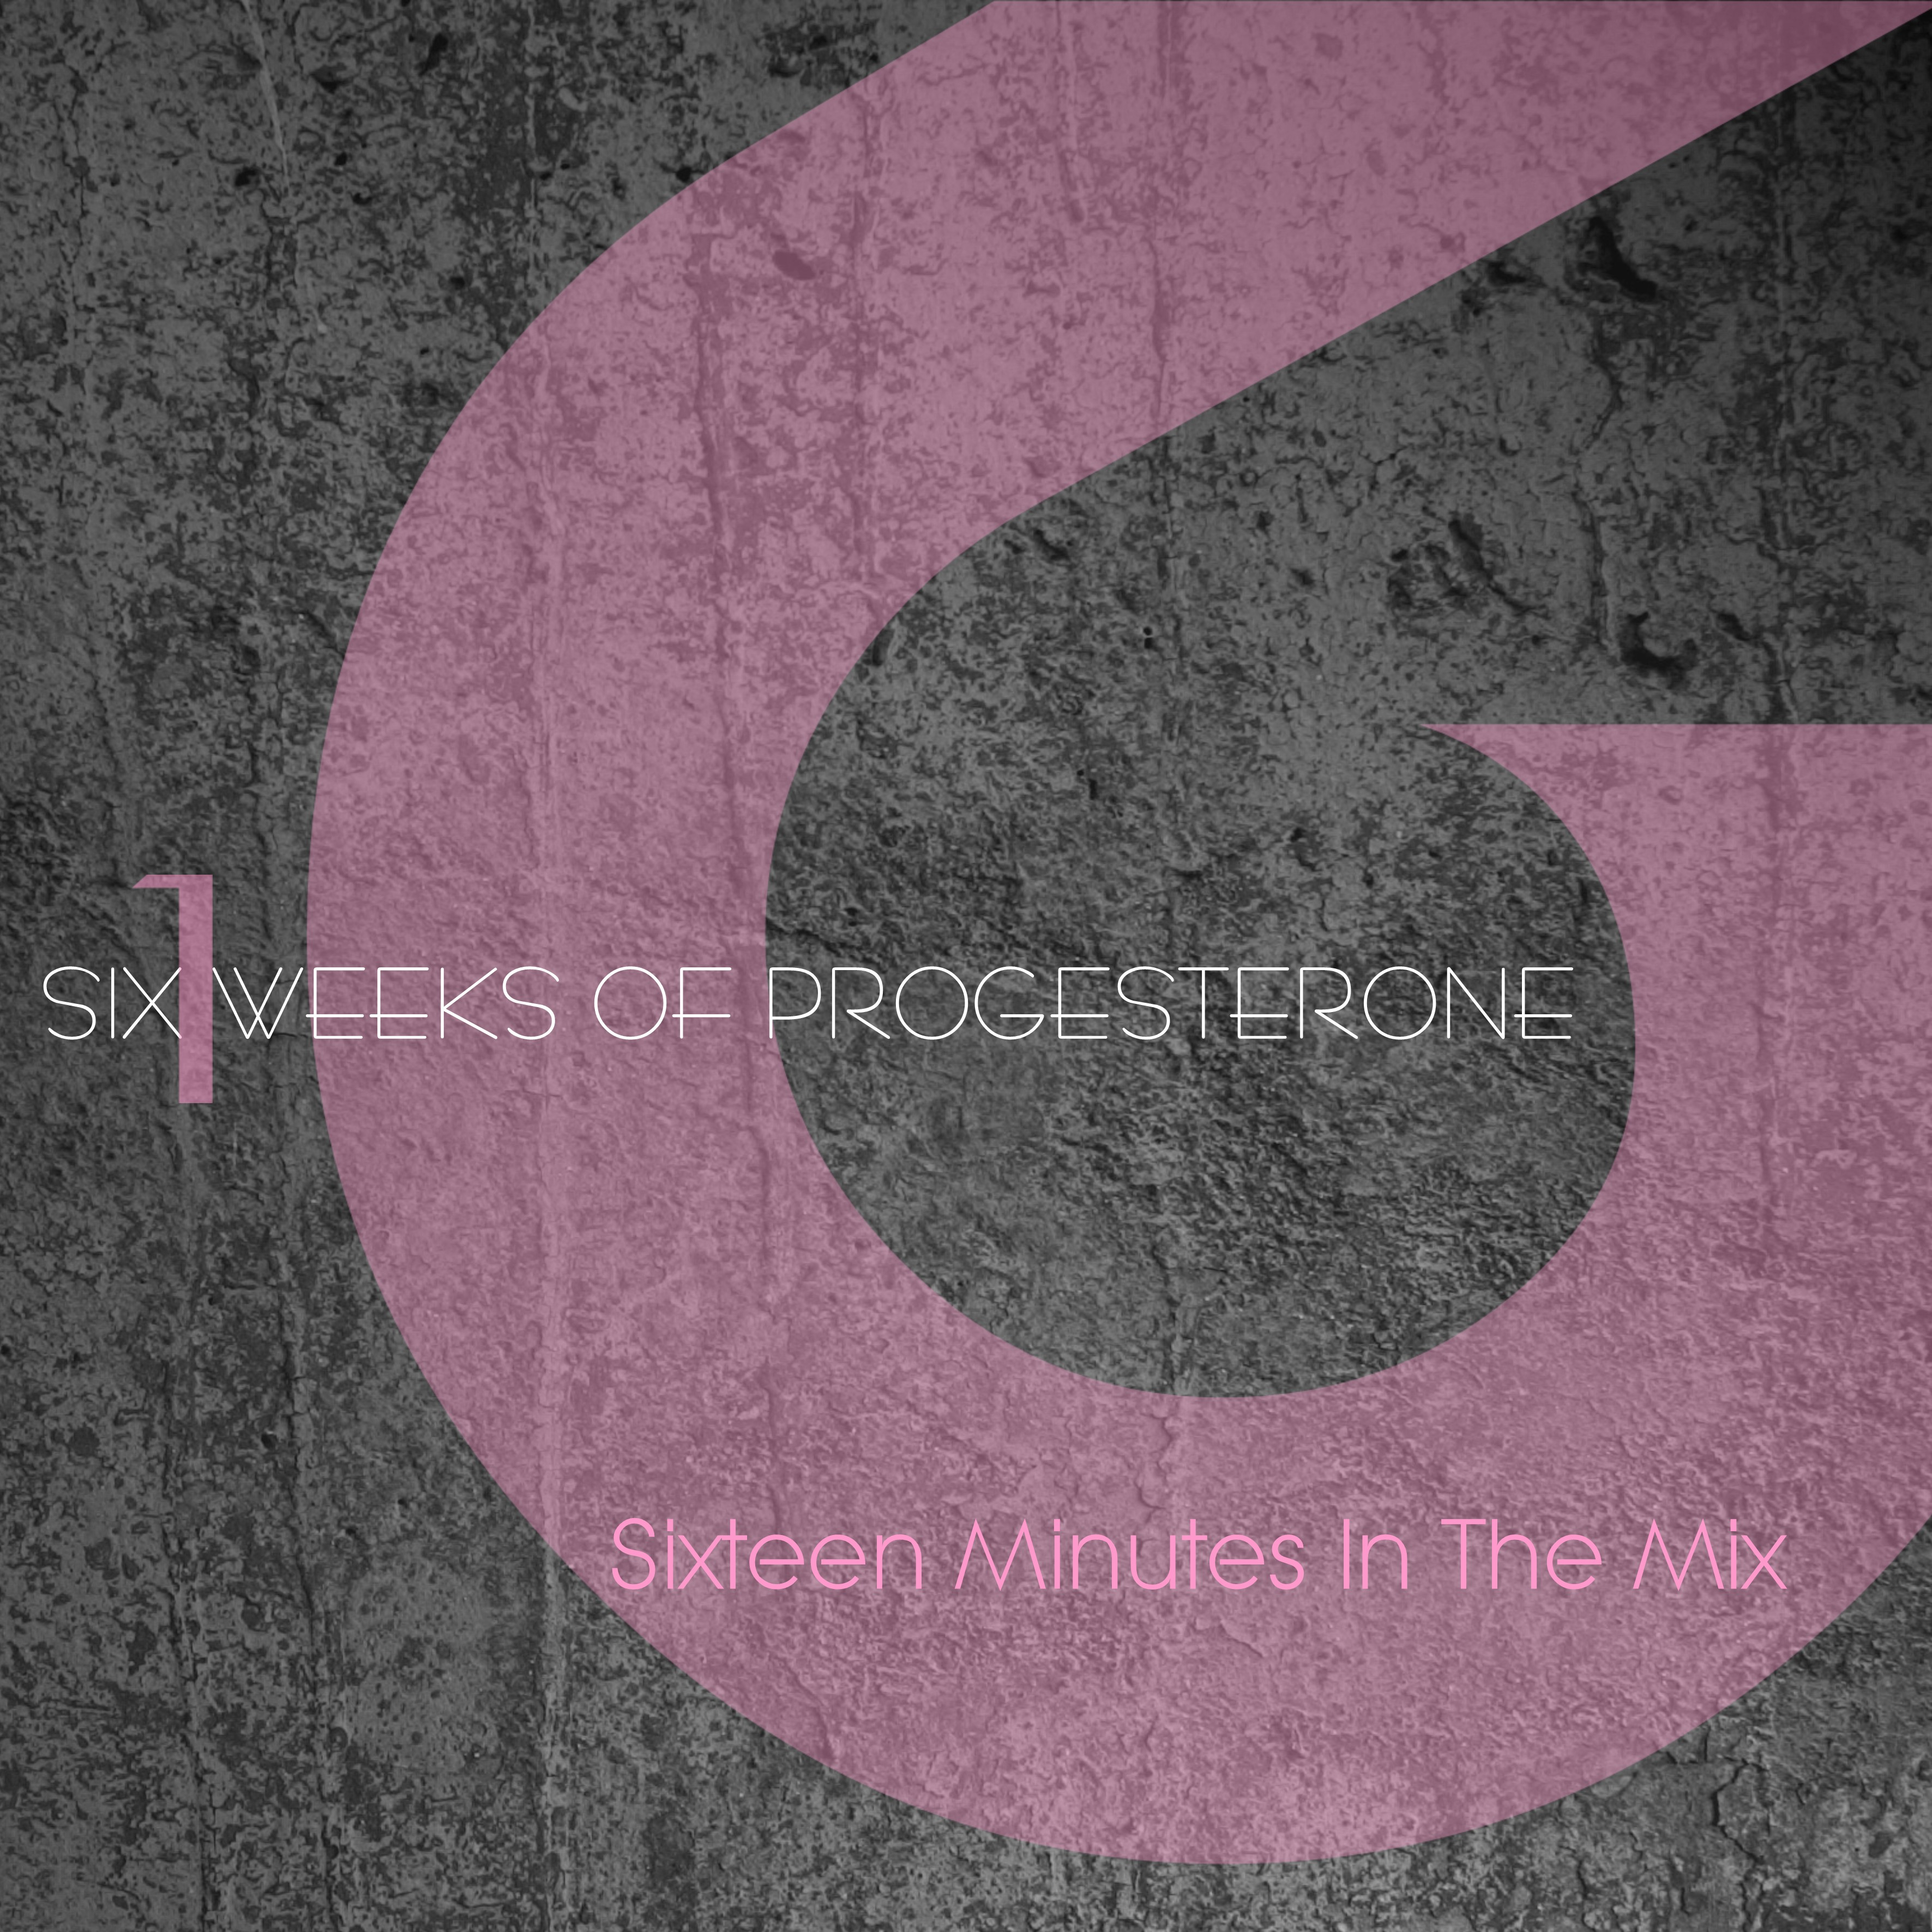 Progesterone - 16 Minutes Of Mix-CLEAR-C